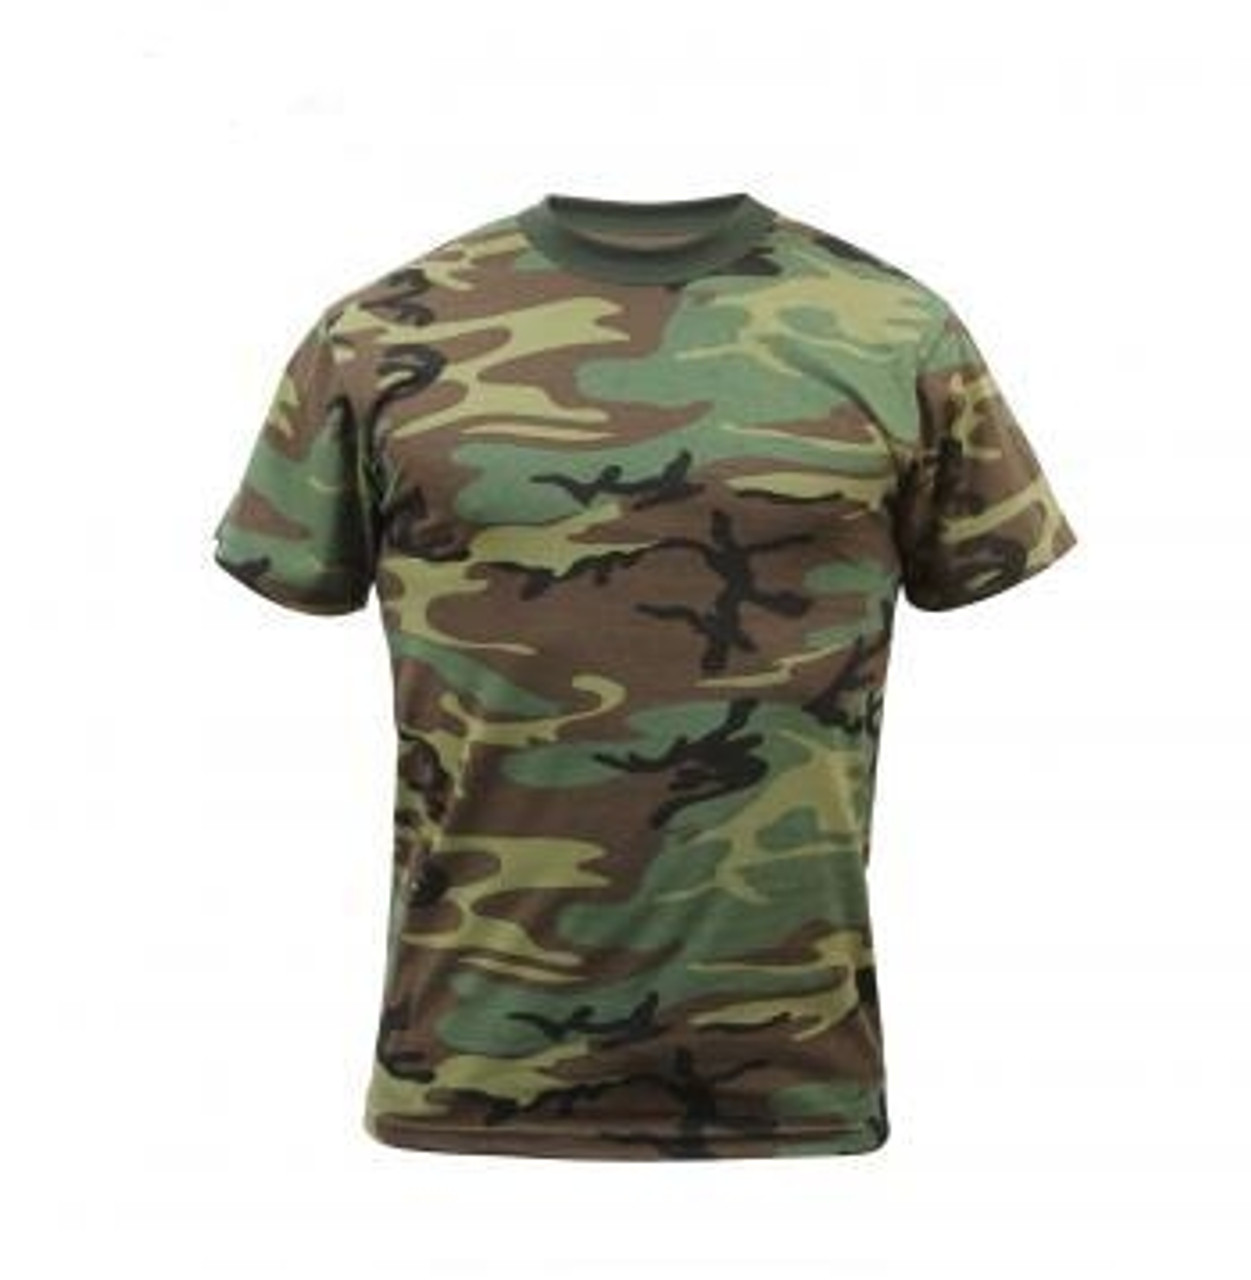 Camo T-Shirts - Woodland Camo from Hessen Tactical